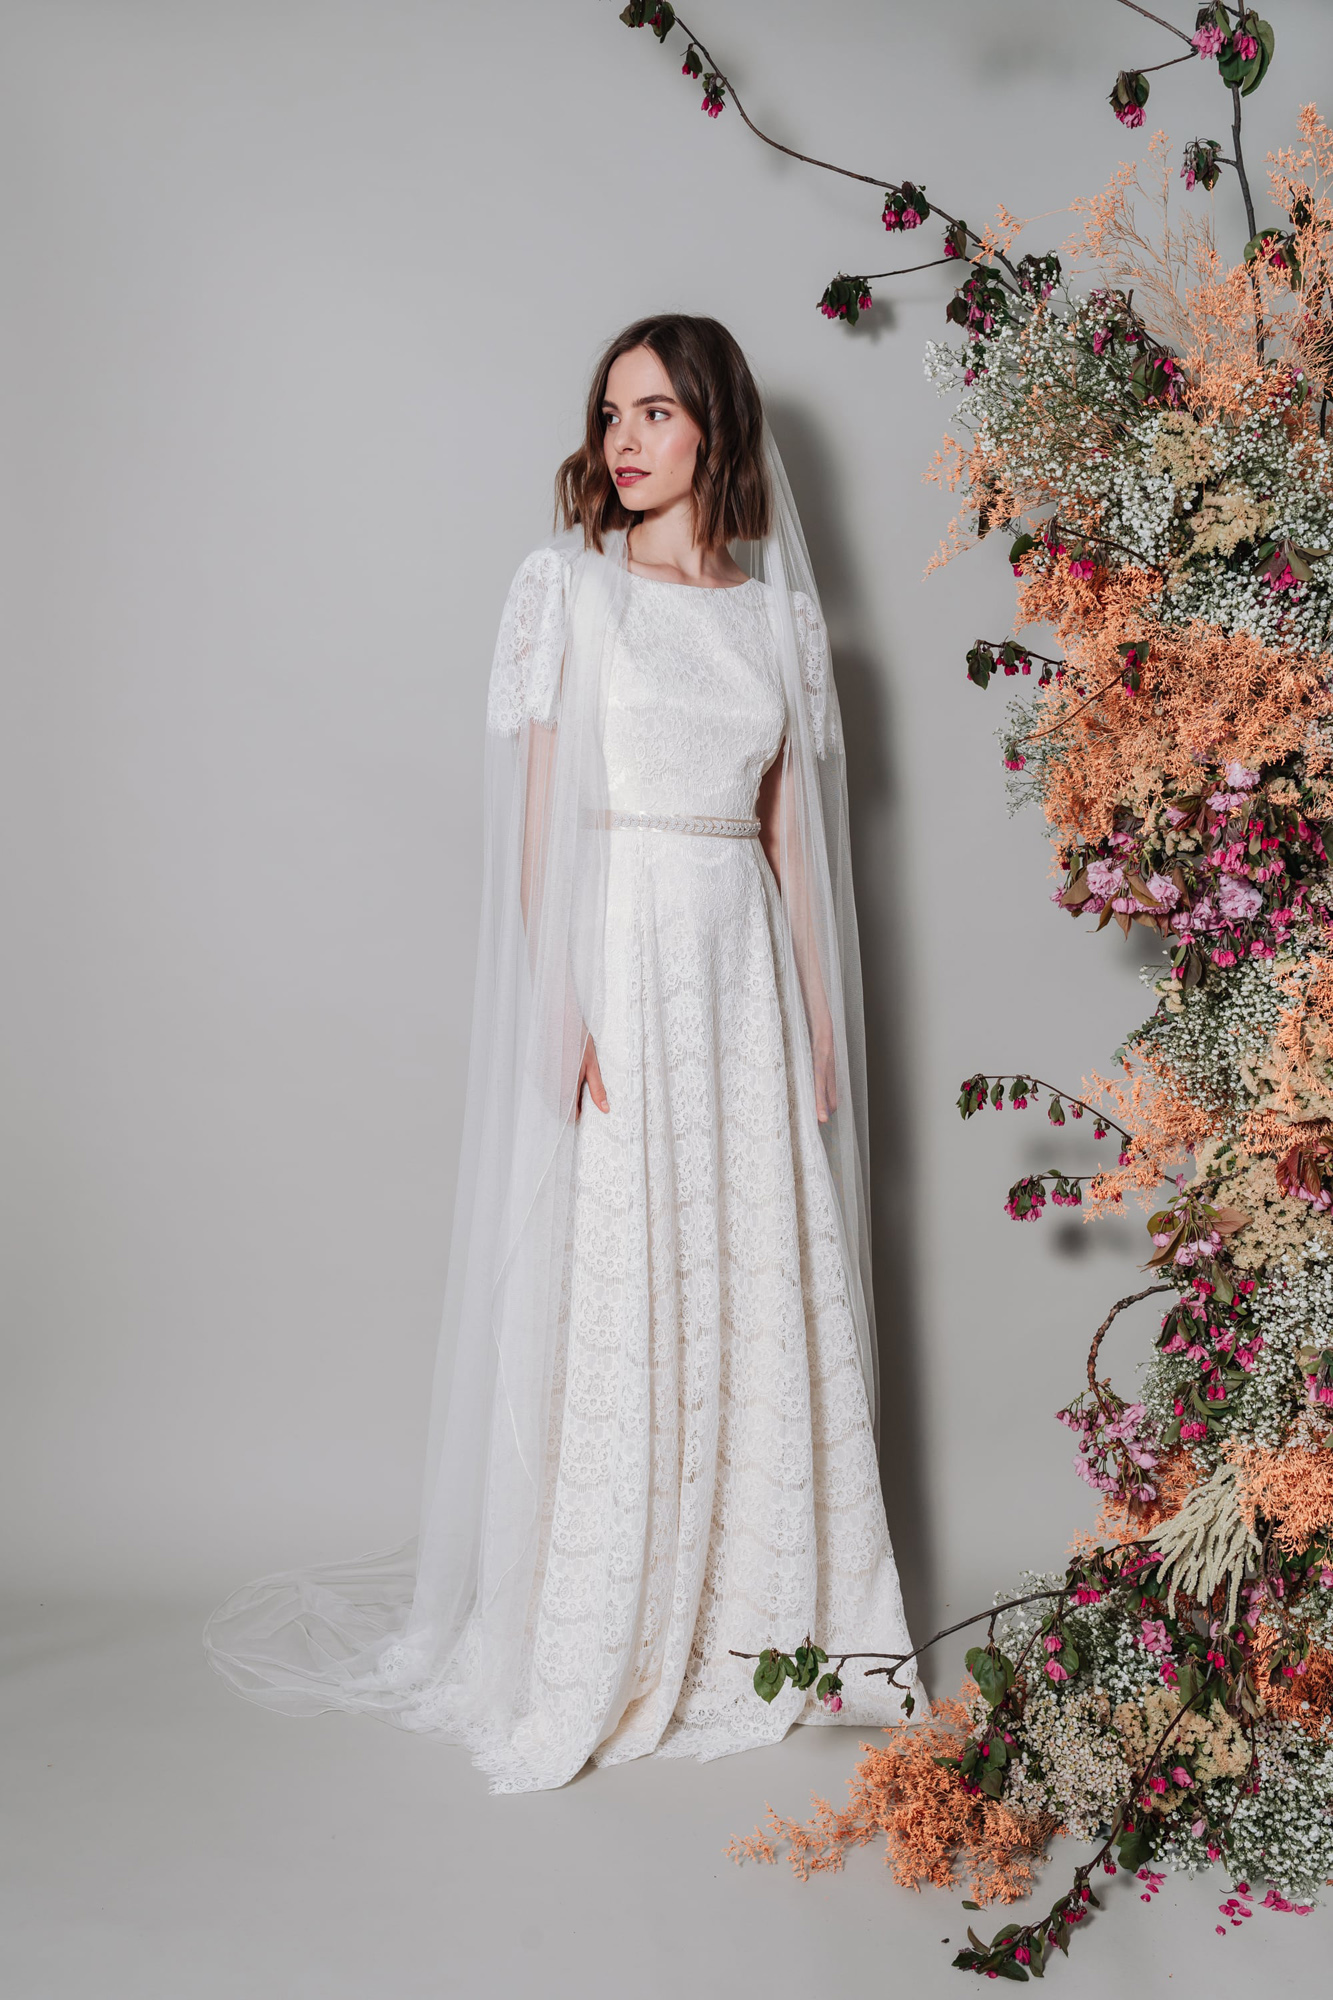 Kate-Beaumont-Sheffield-Bohemian-Dahlia-Panelled-Lace-Silk-Wedding-Gown-12.jpg